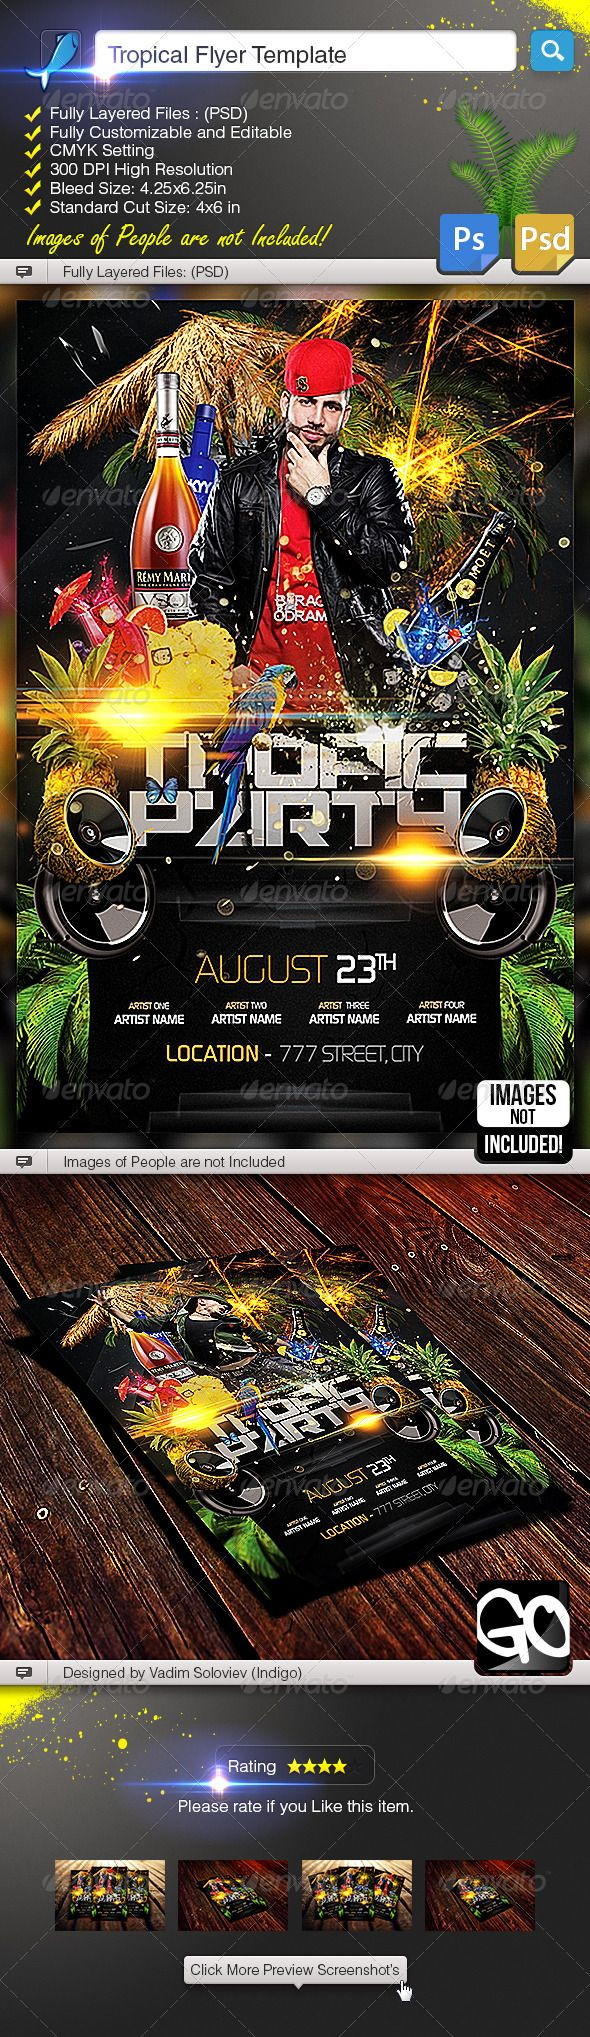 #Tropical #Flyer Template - Clubs & Parties #Events Download here: https://graphicriver.net/item/tropical-flyer-template/5379160?ref=alena994